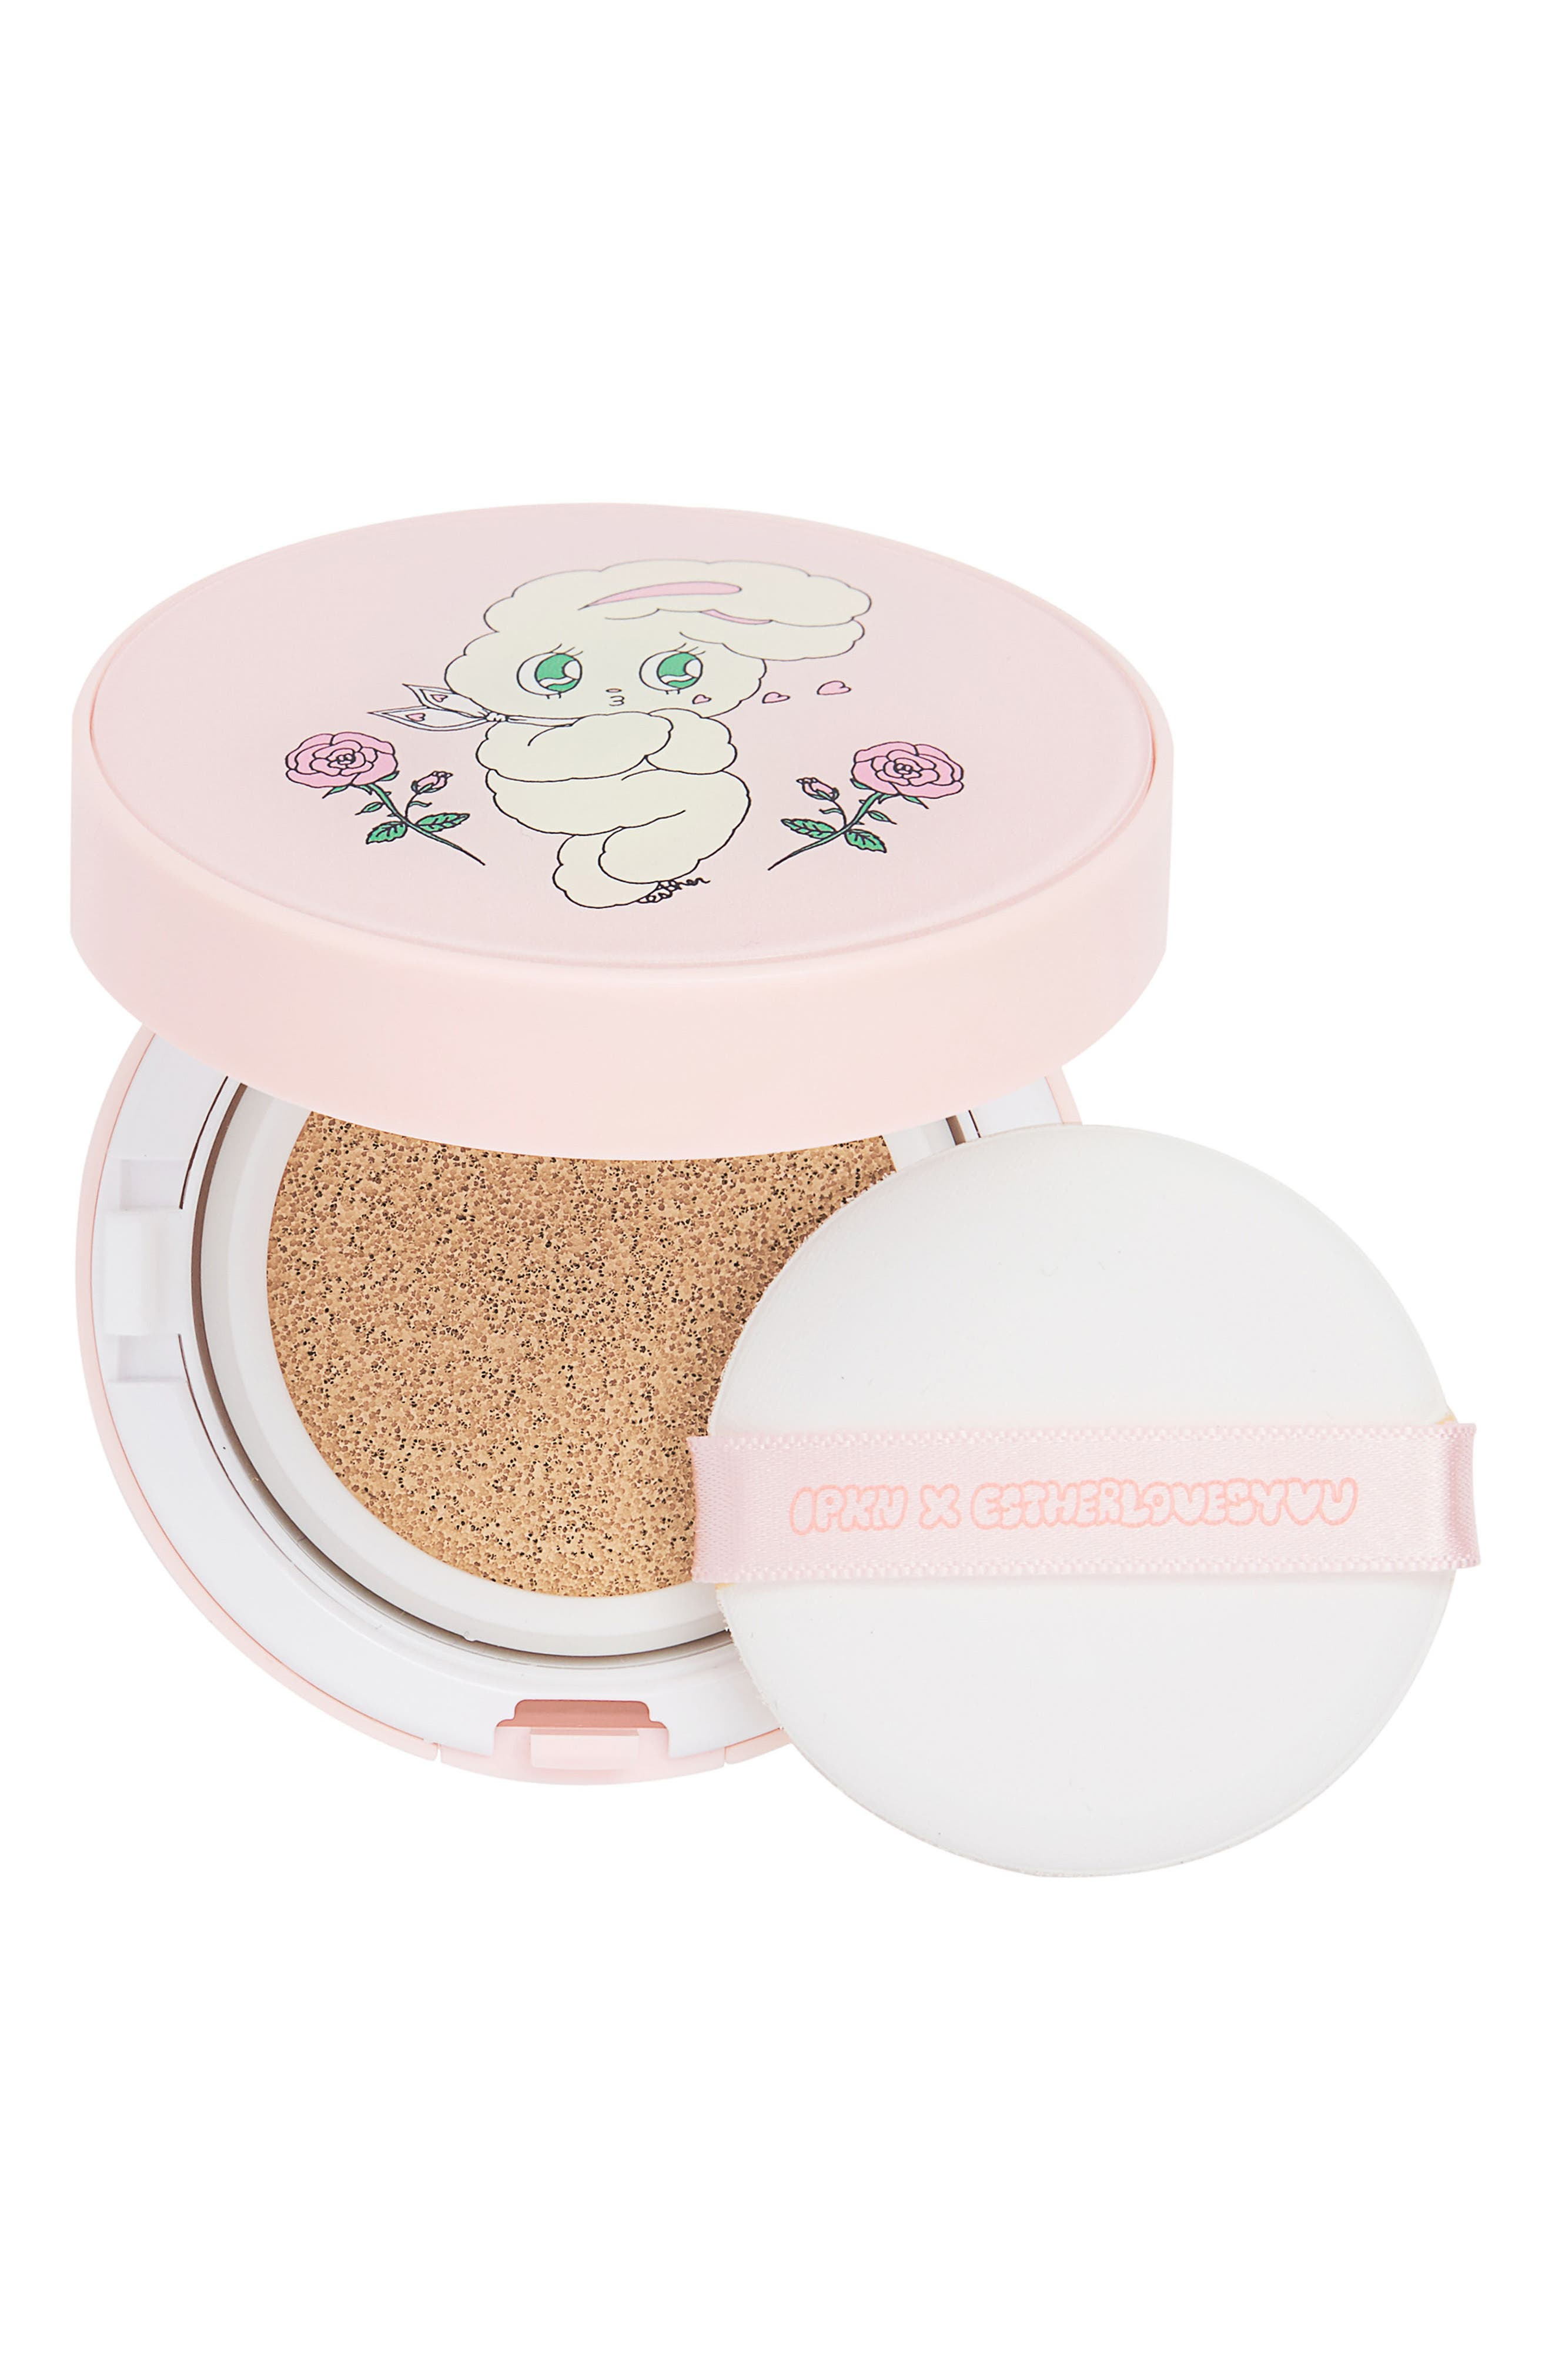 Twinkle Multi-Tasking Foundation Cushion SPF 50,                         Main,                         color, Nude Beige